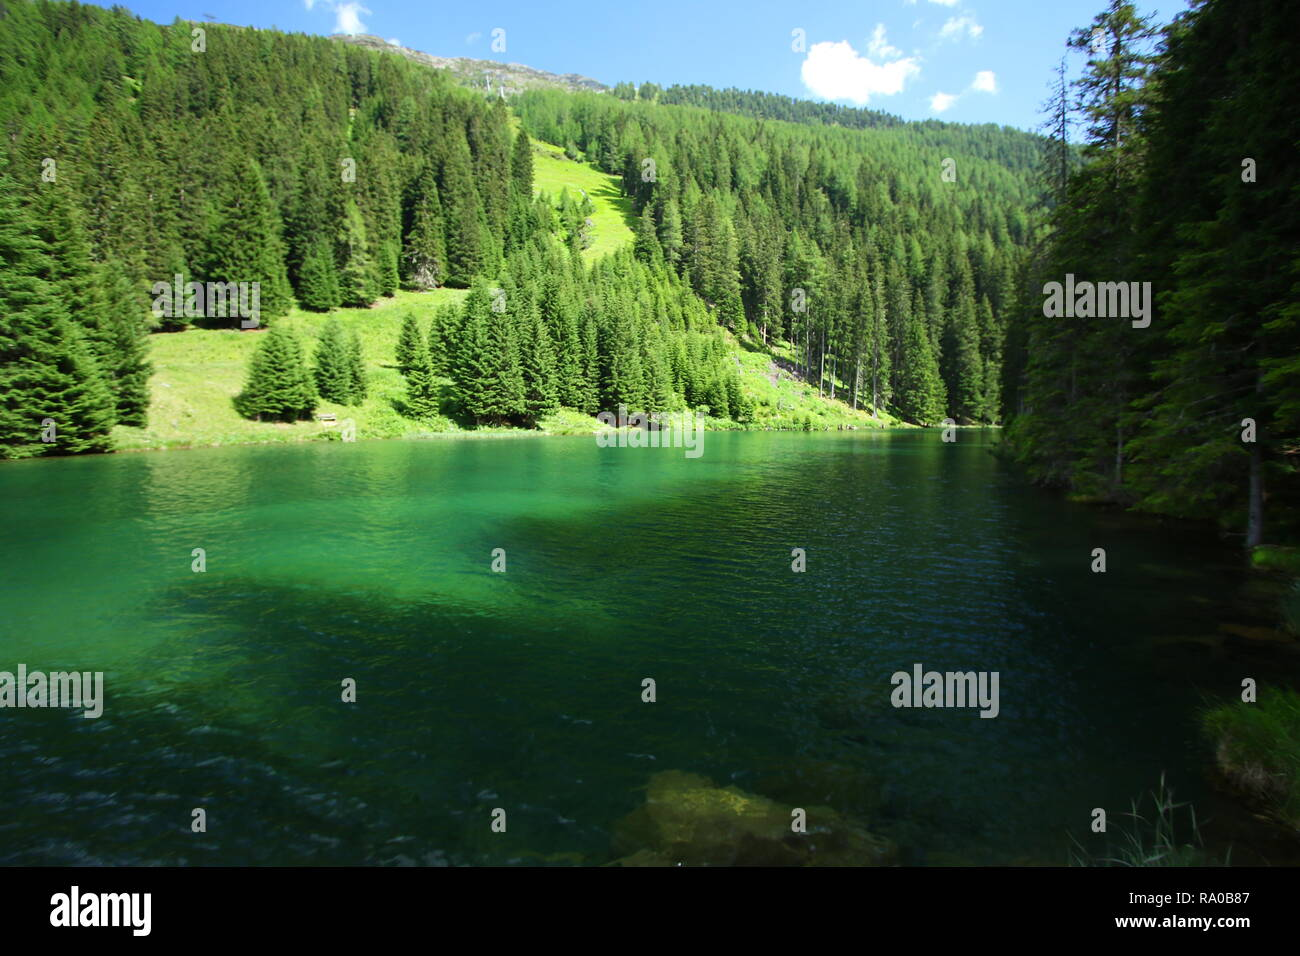 The Schwarzwassersee is close to Ischgl in Austria, nice for walk and hike. fishing with permit is good. friends and familiy use the place for picnic. - Stock Image